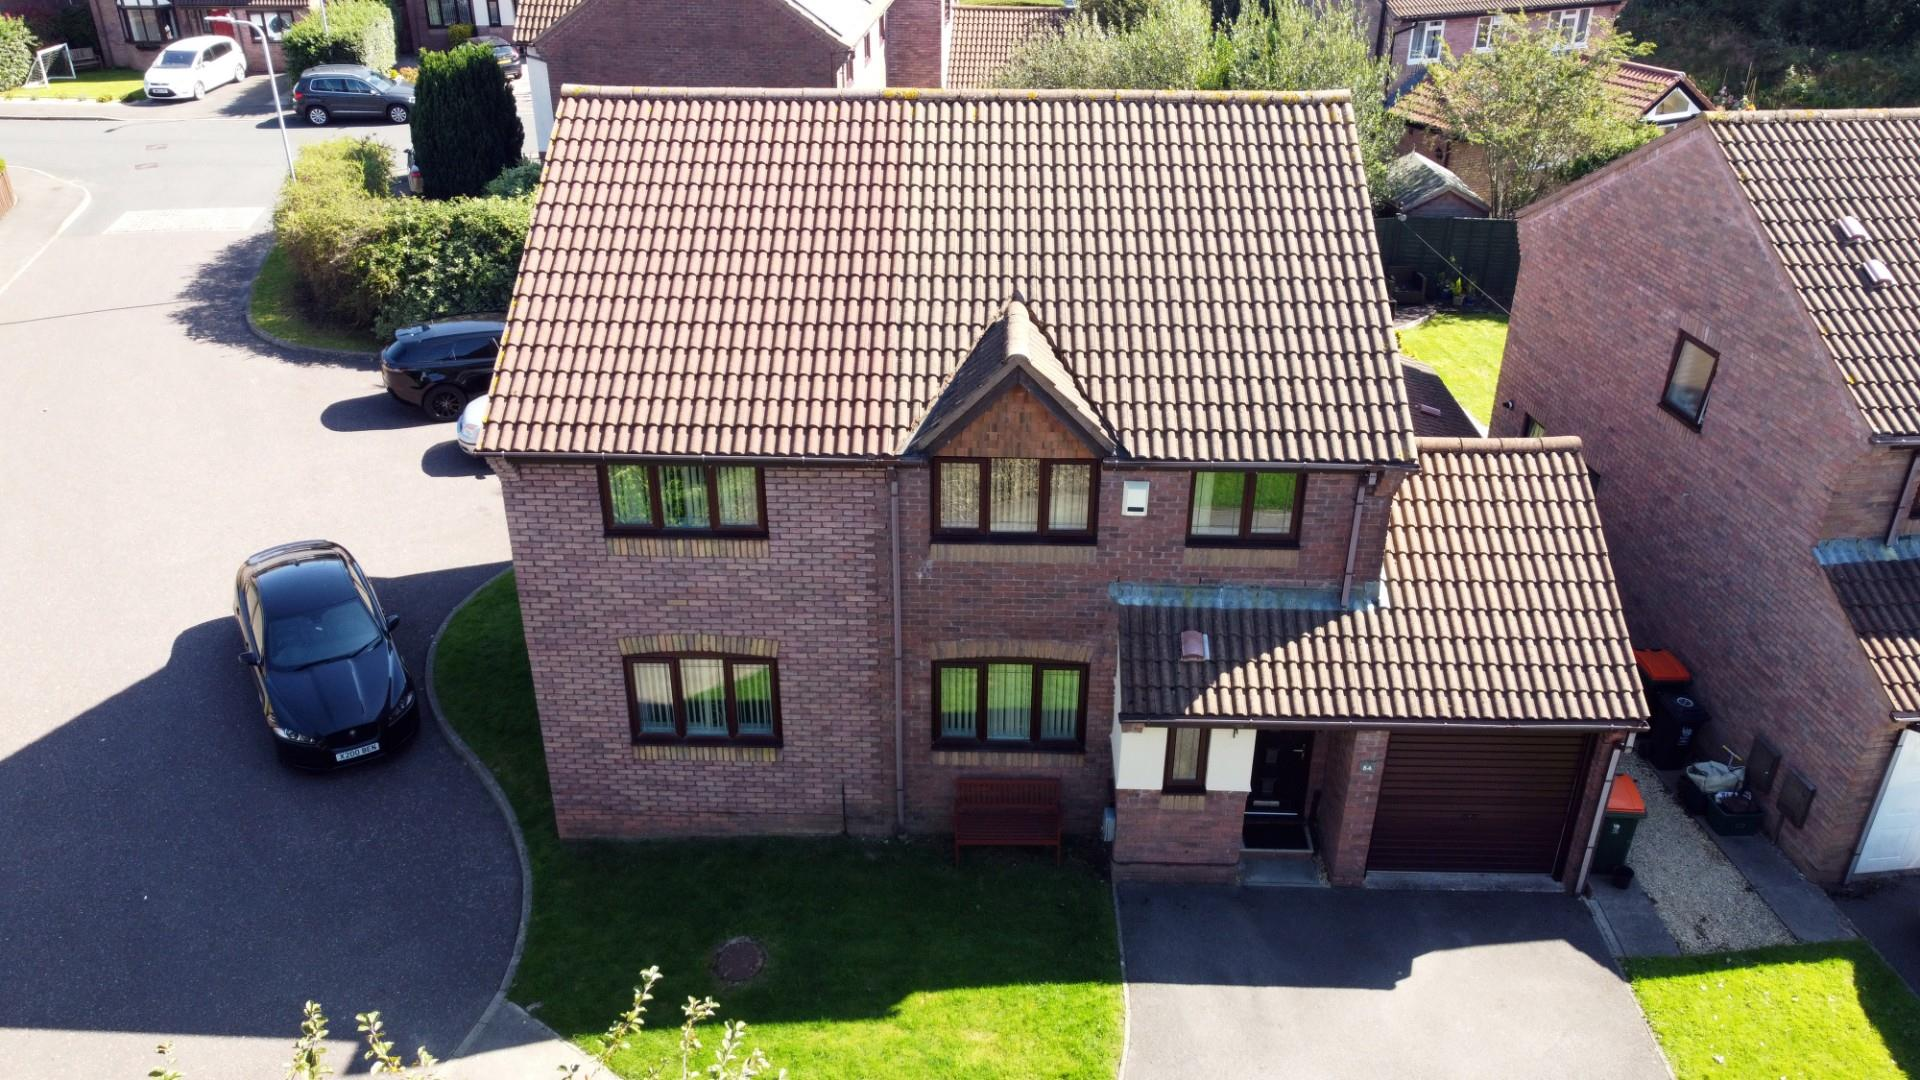 4 bed detached house for sale in The Meadows, Cardiff, CF3